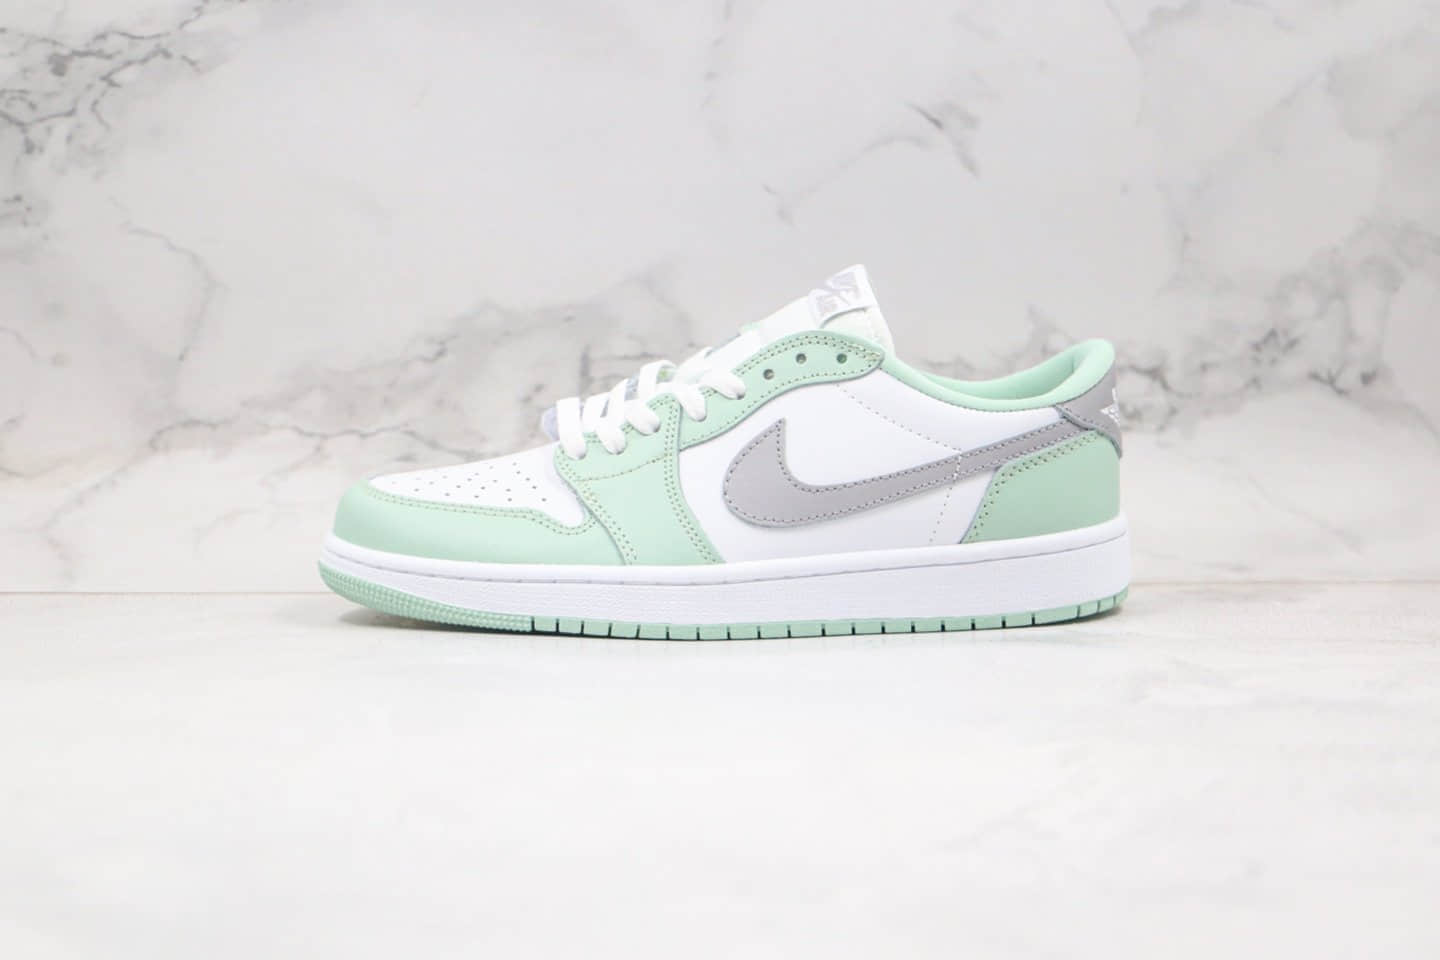 乔丹Air Jordan1 LoW OG NeutralGrey纯原版本低帮